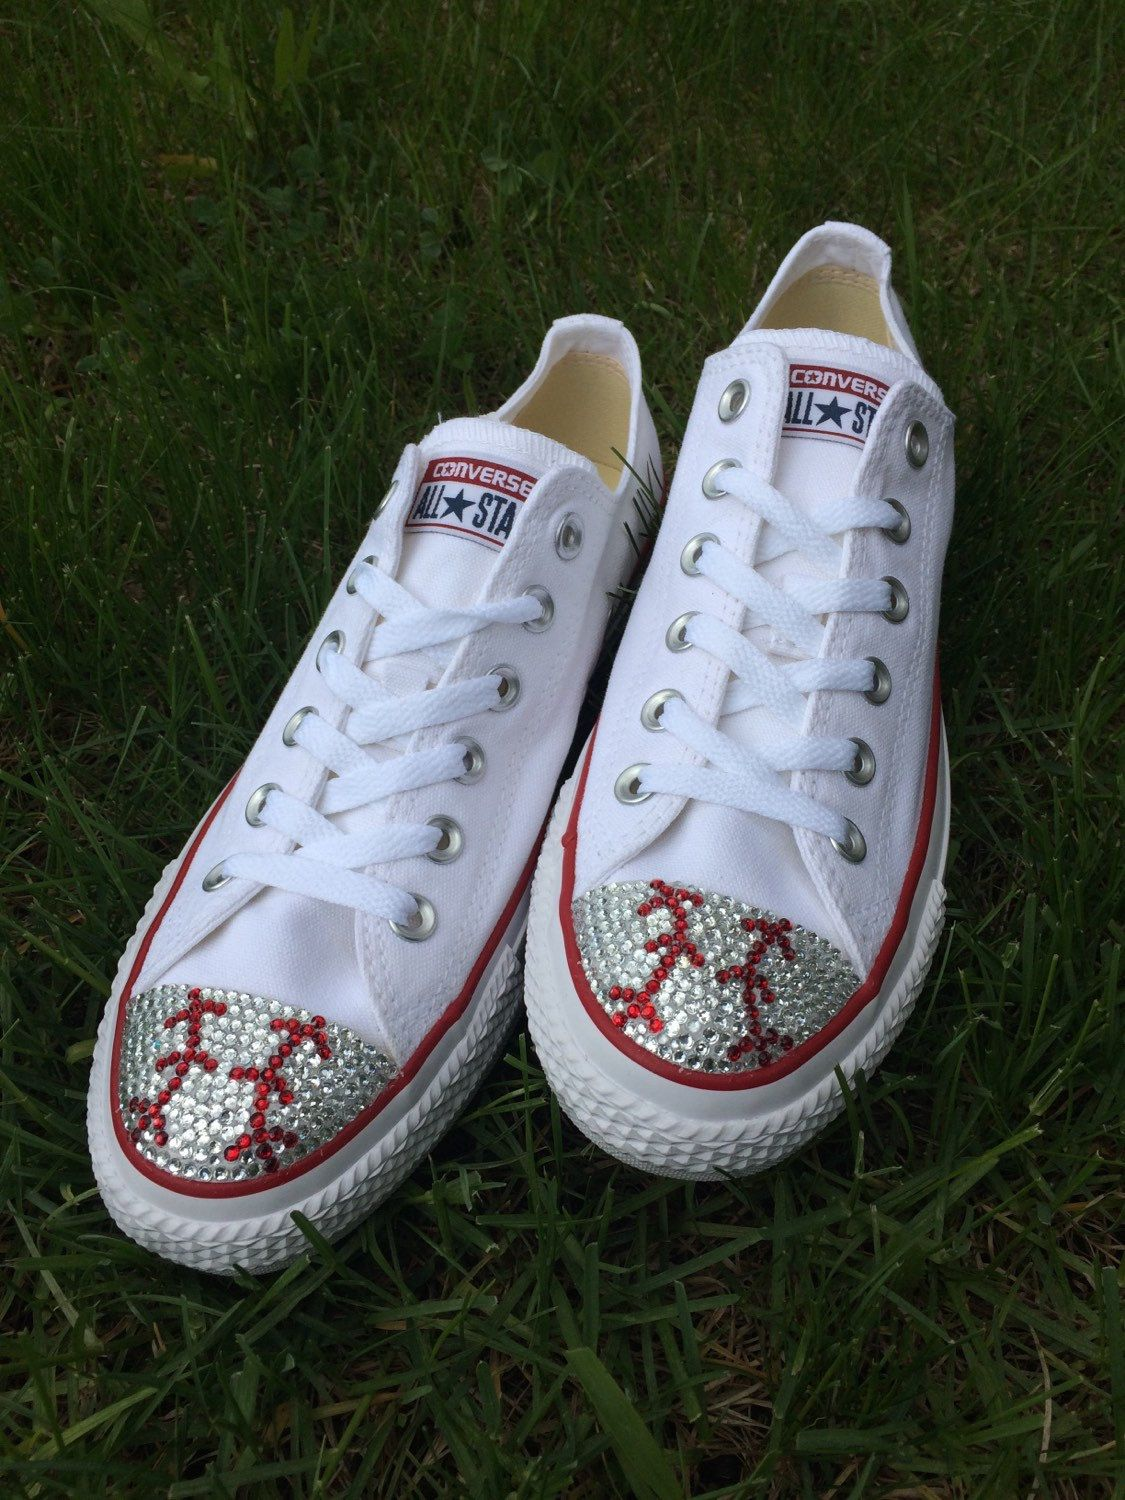 510519ff04e1 Low Top Baseball Blinged Converse Shoes. Custom Made Converse. Toddler  Shoes…